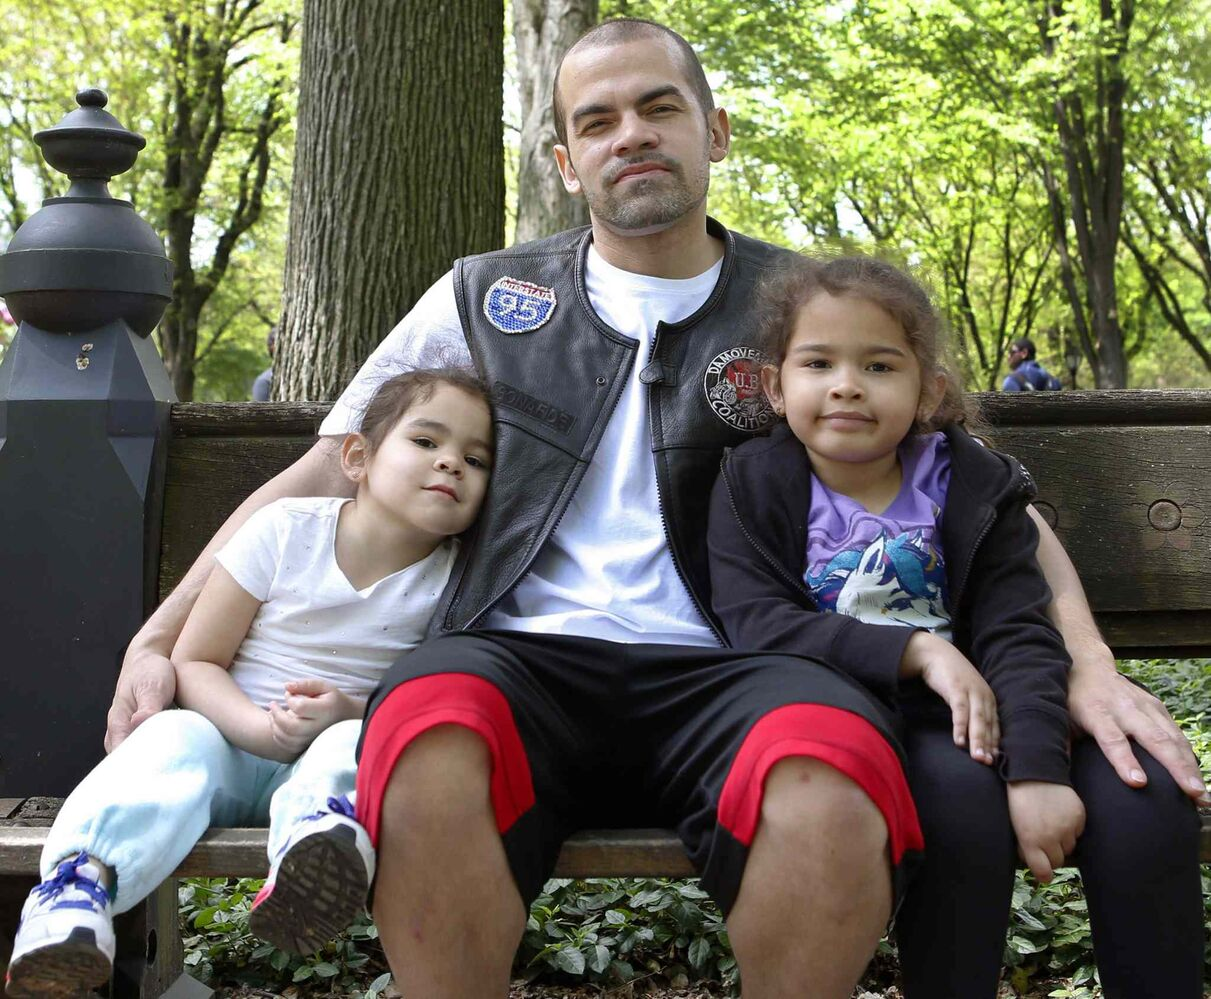 "Orlando Lopez, 34, of the Bronx borough of New York, poses for a photograph with his daughters, Sophia, 3, and Roselyann, 5, after a walkathon in New York's Central Park. When asked for his thoughts on fatherhood, Lopez, who has the girls' names tattooed on his arms, said, ""It's fun. I love it. You're with them every day. It's happiness. I've been following the same steps as my father. He was always around. I'm always around them."" (Kathy Willens / The Associated Press)"